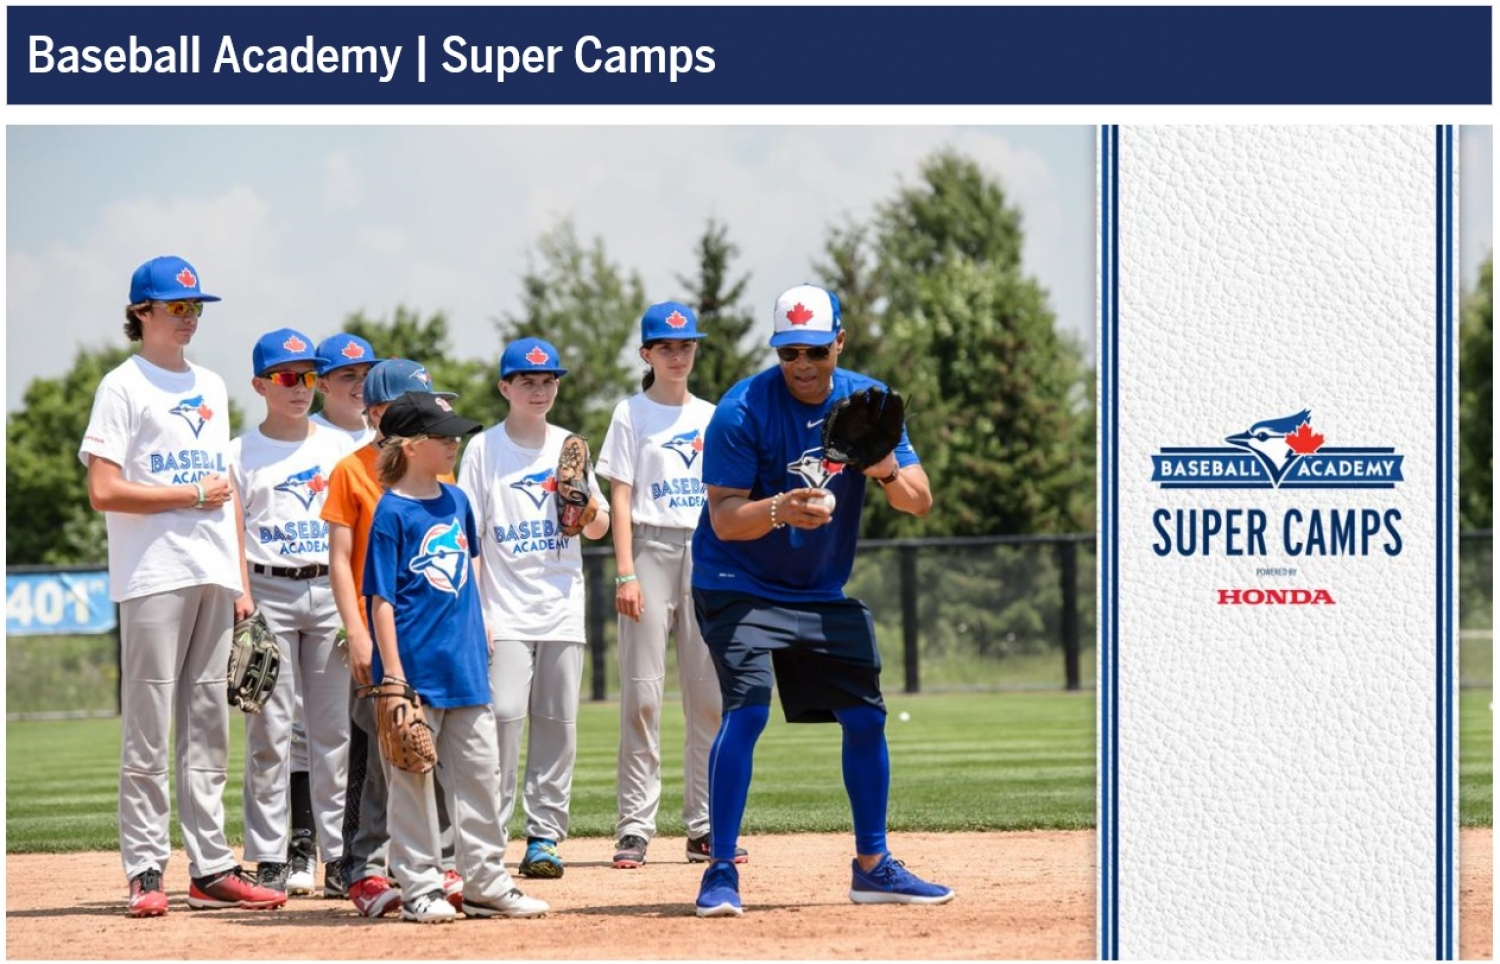 Blue Jays Training Camp, Regina Optimist Baseball Park, July 8 and July 9, Reminder!